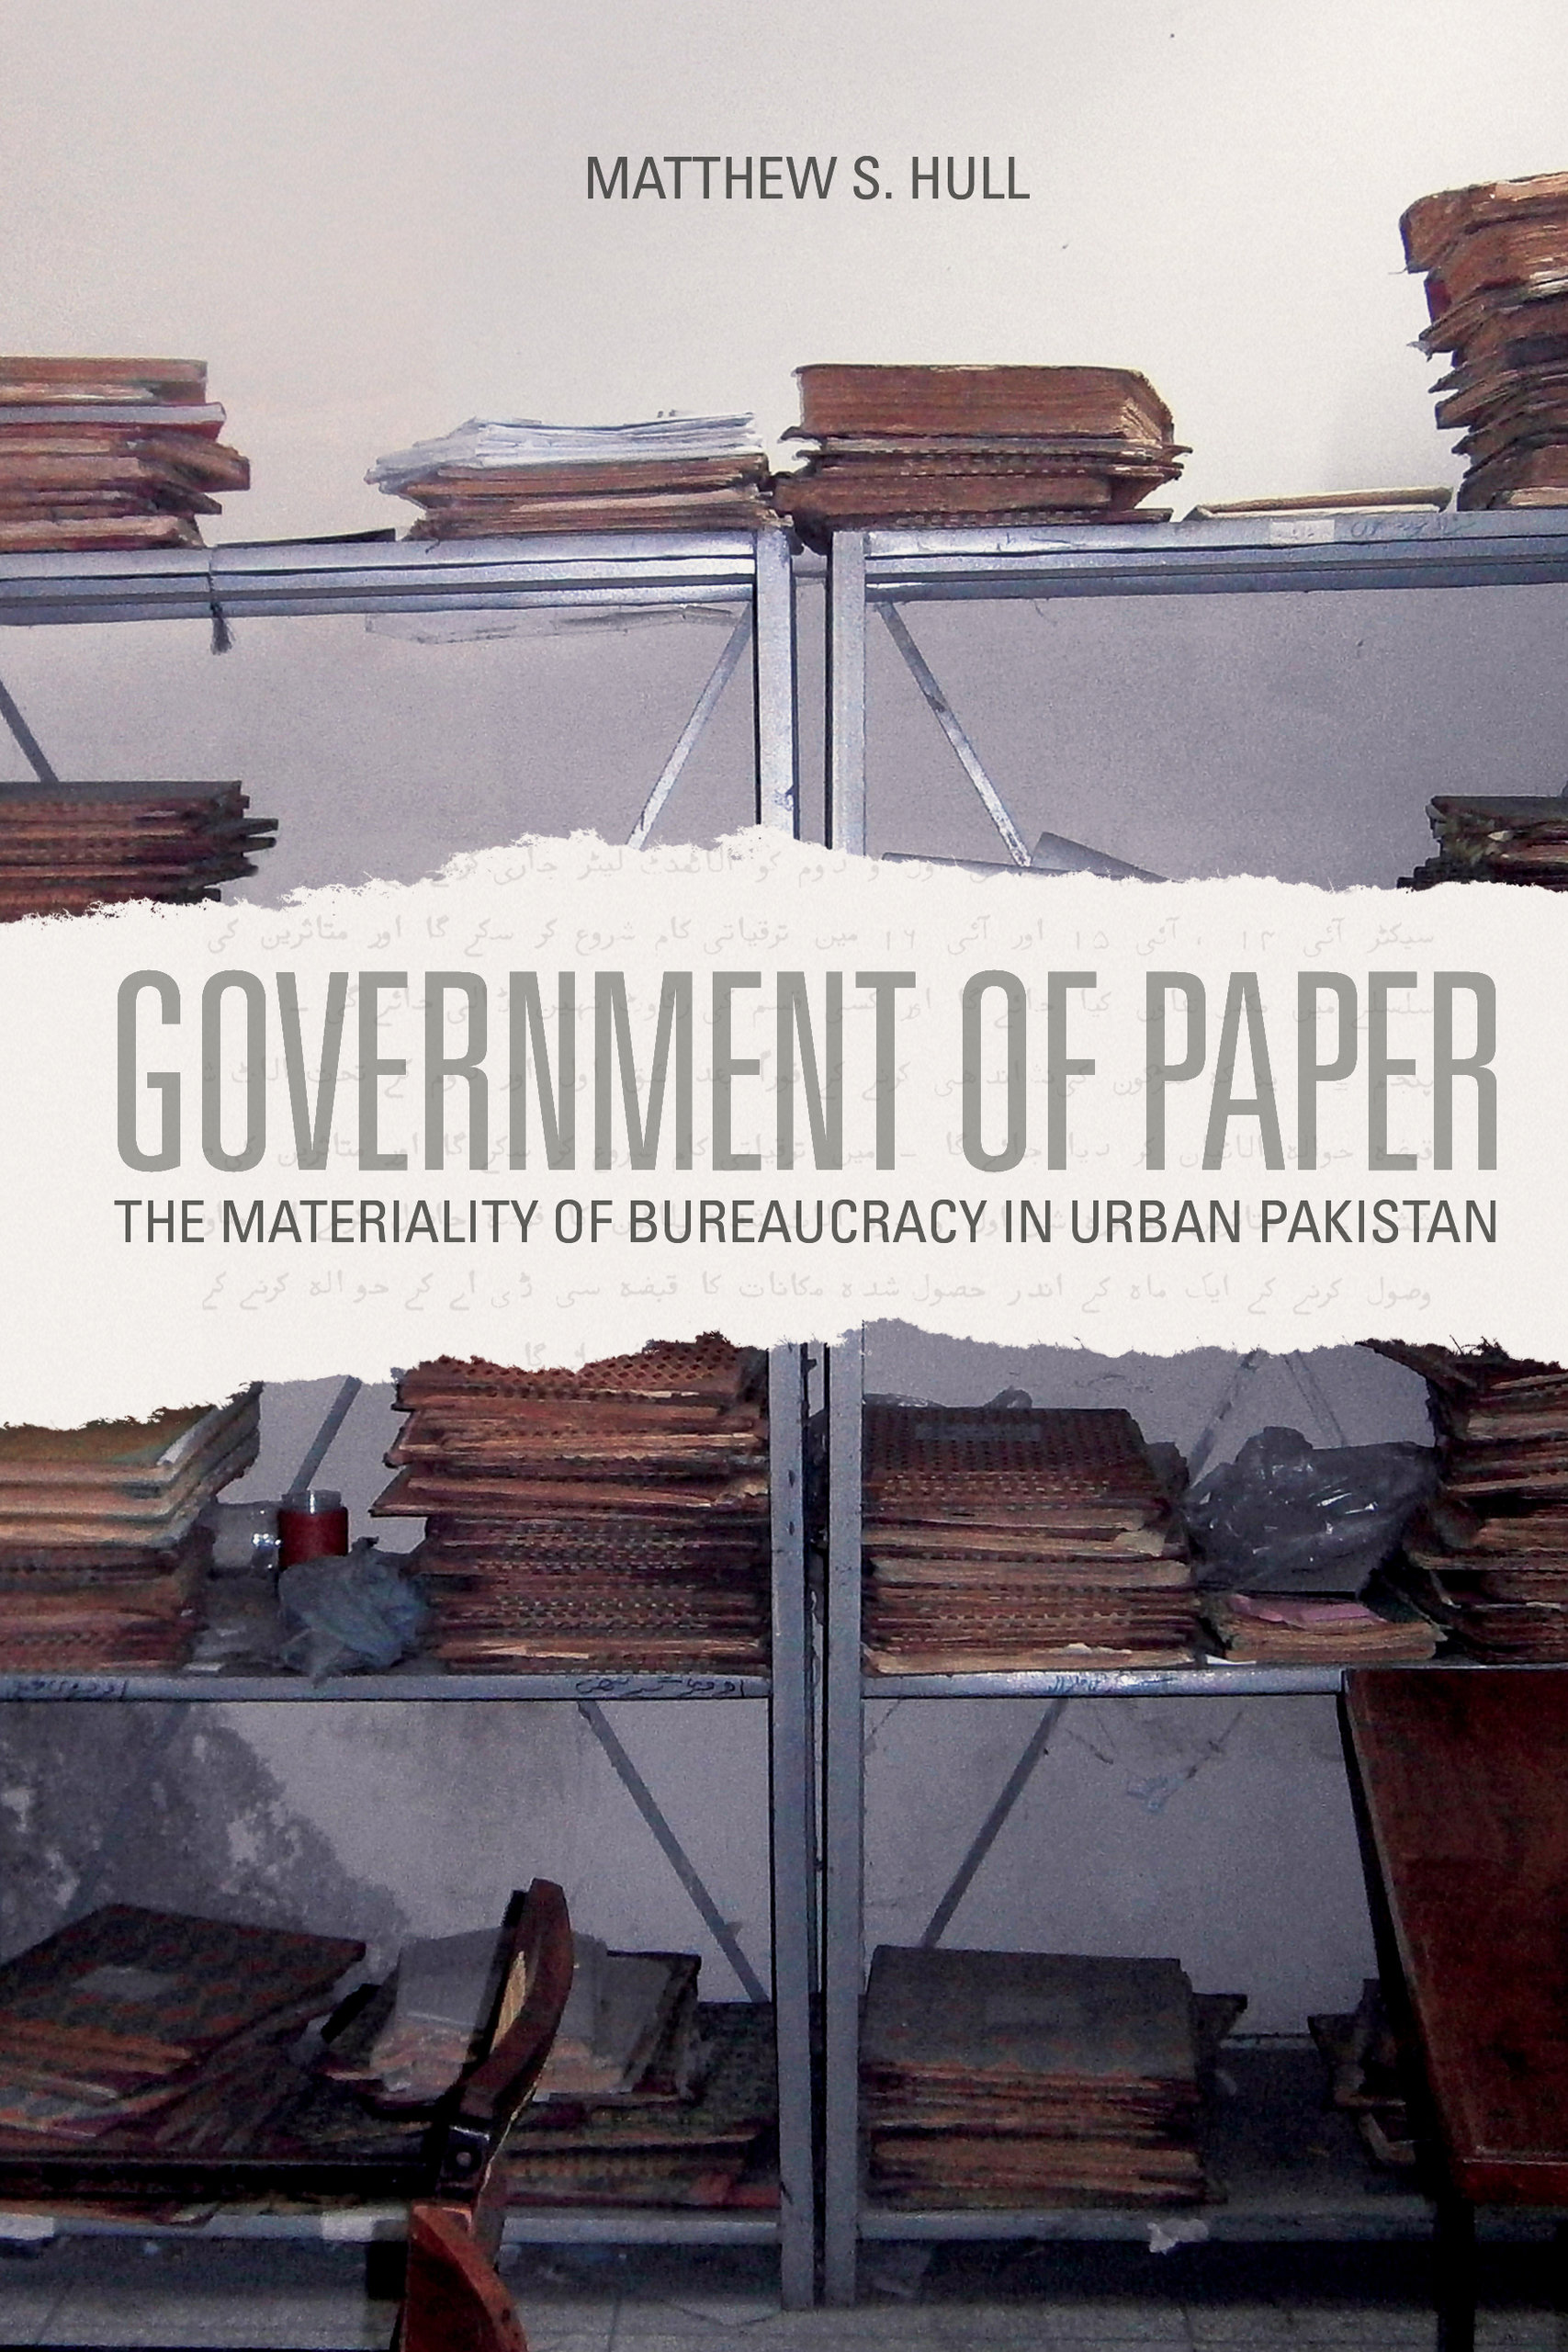 functions of government in society What is the role of government in society this has been and remains the most fundamental question in all political discussions and debates its answer determines the nature of the social.